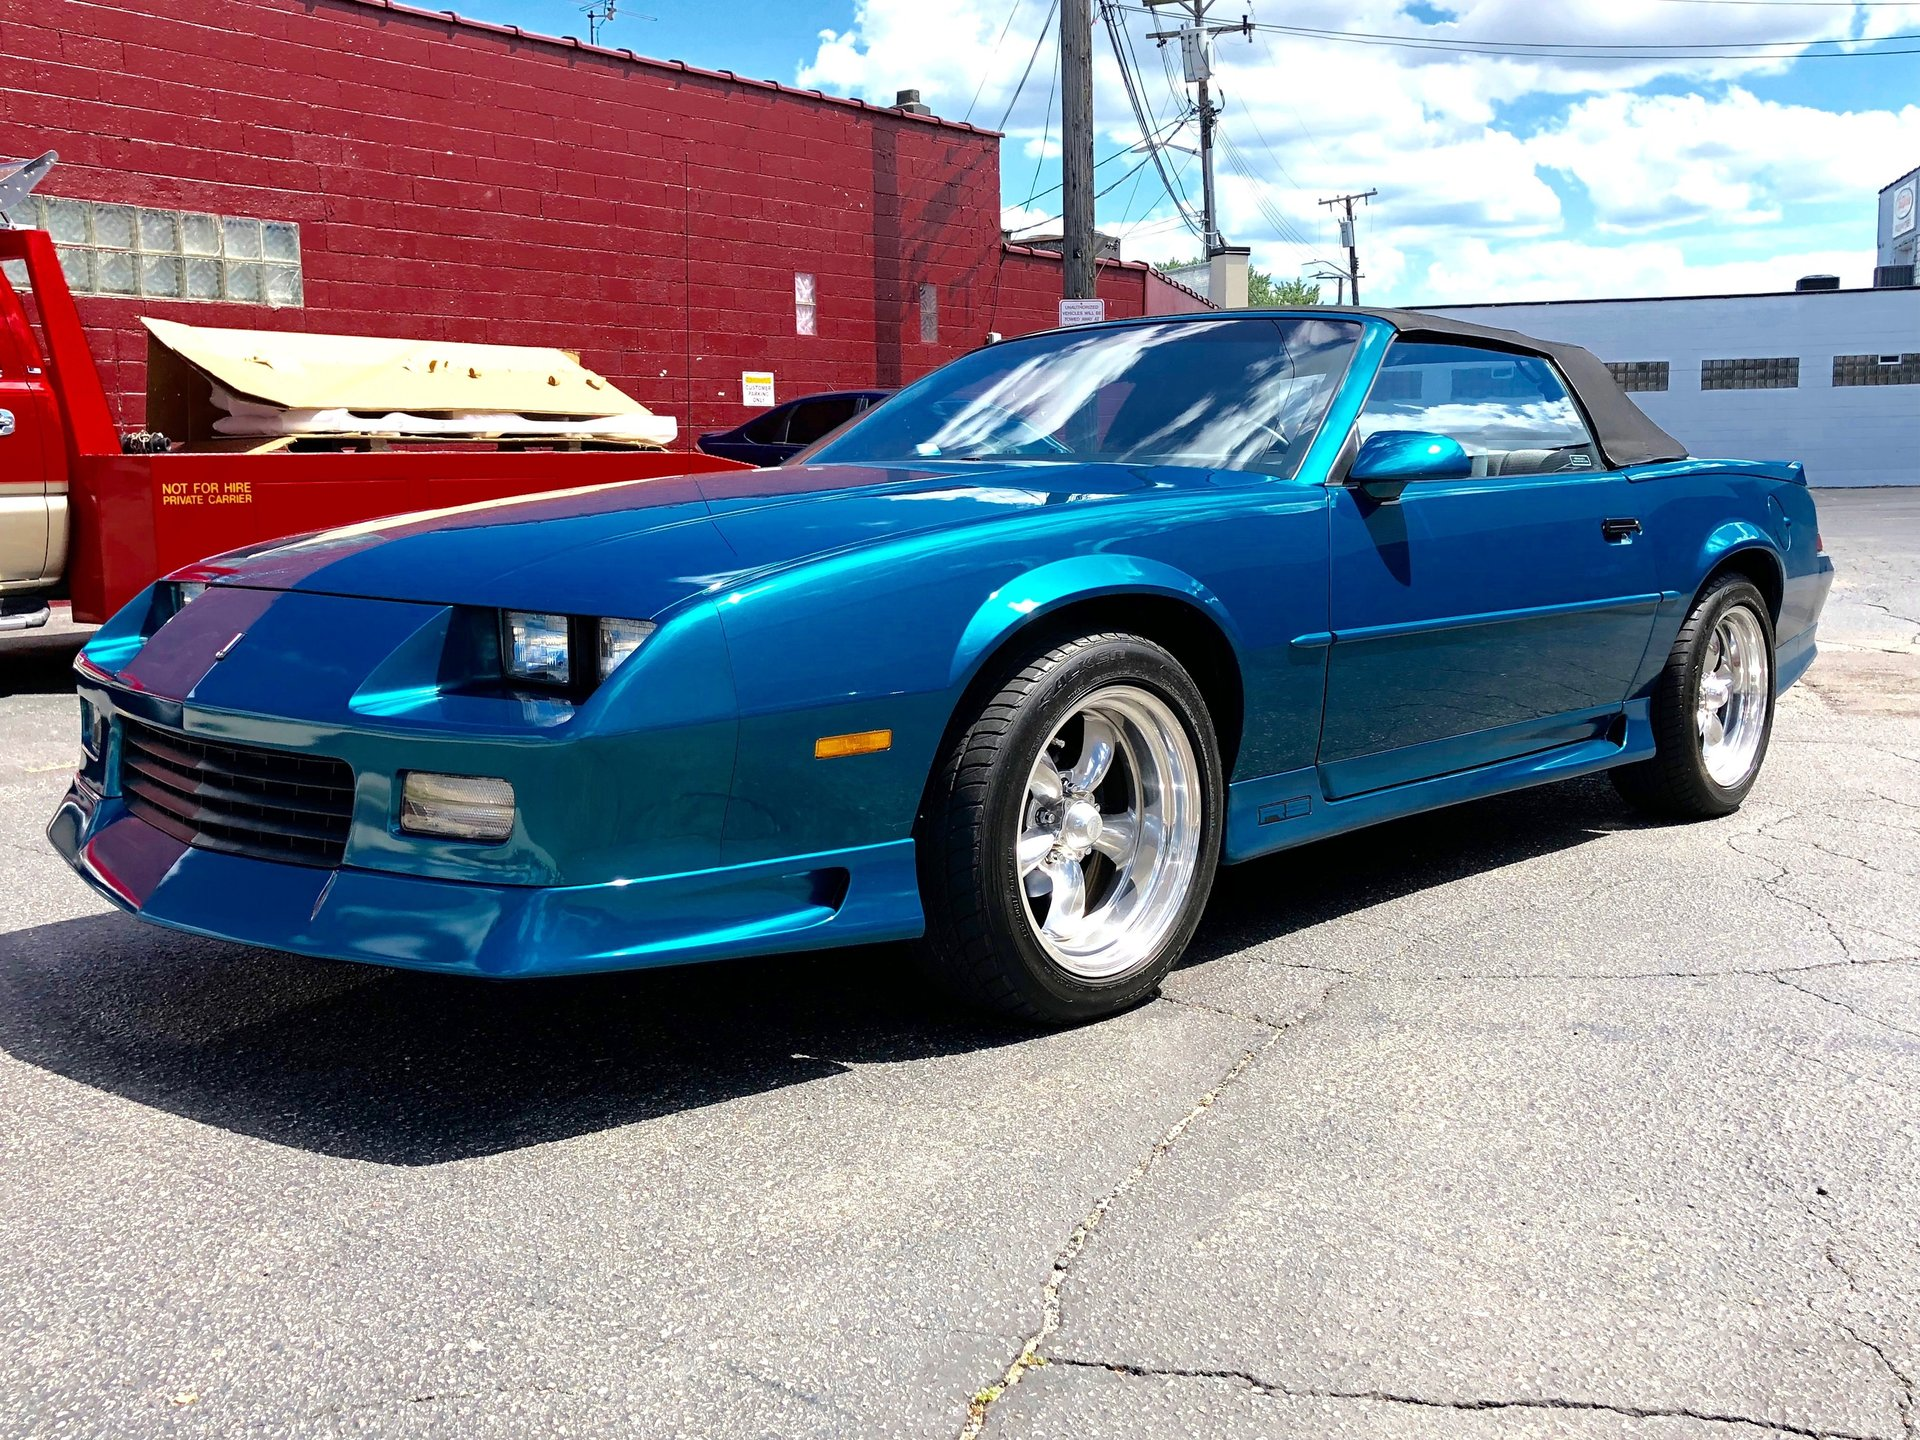 1992 chevrolet camaro rs for sale 94351 mcg. Black Bedroom Furniture Sets. Home Design Ideas